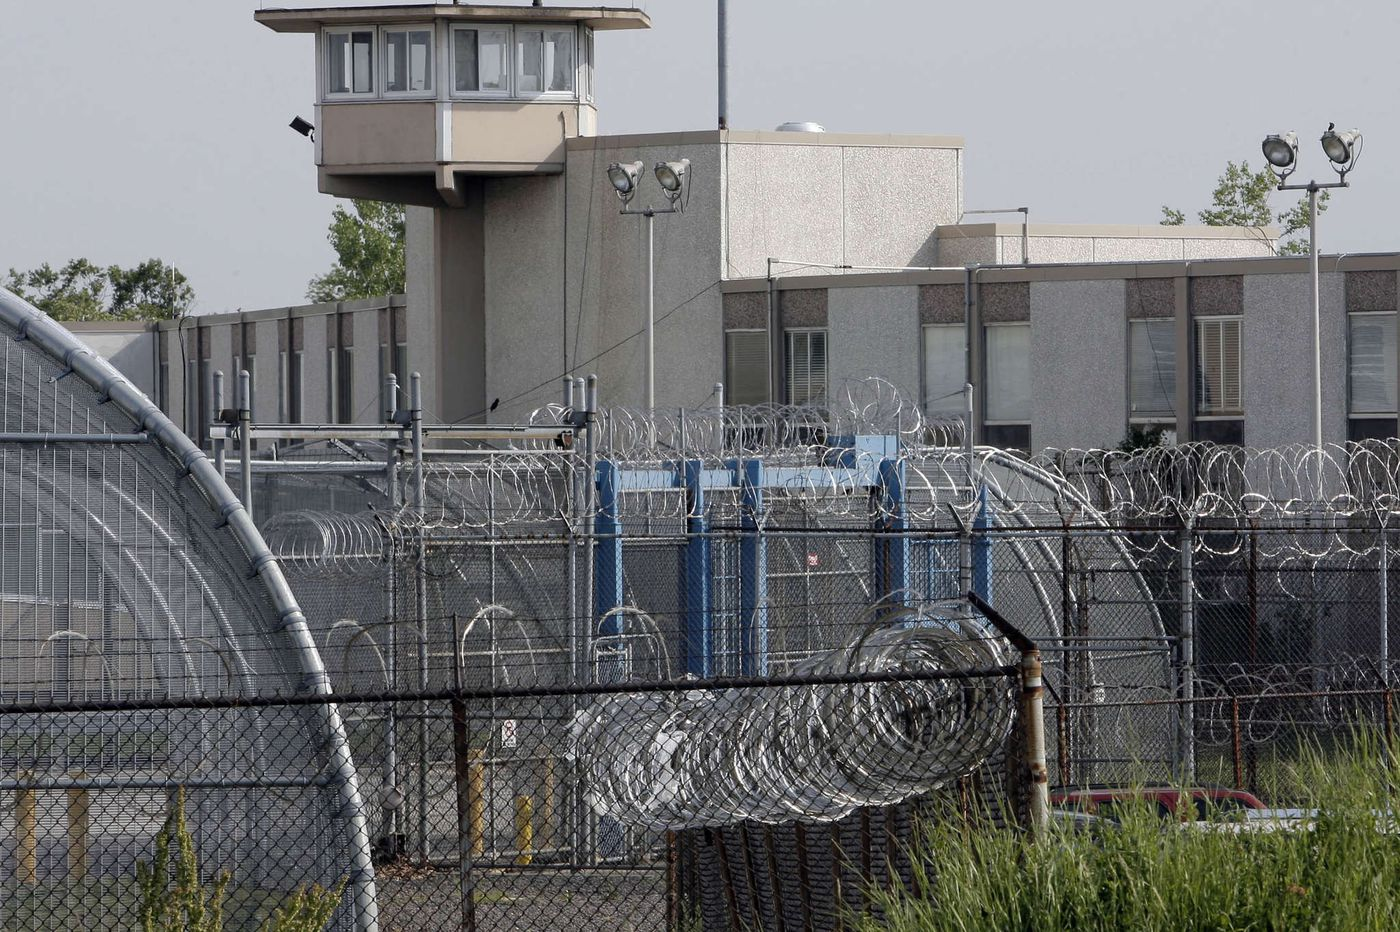 Lawsuit over Philly jails' pandemic response alleges grim conditions, 24-hour lockdowns